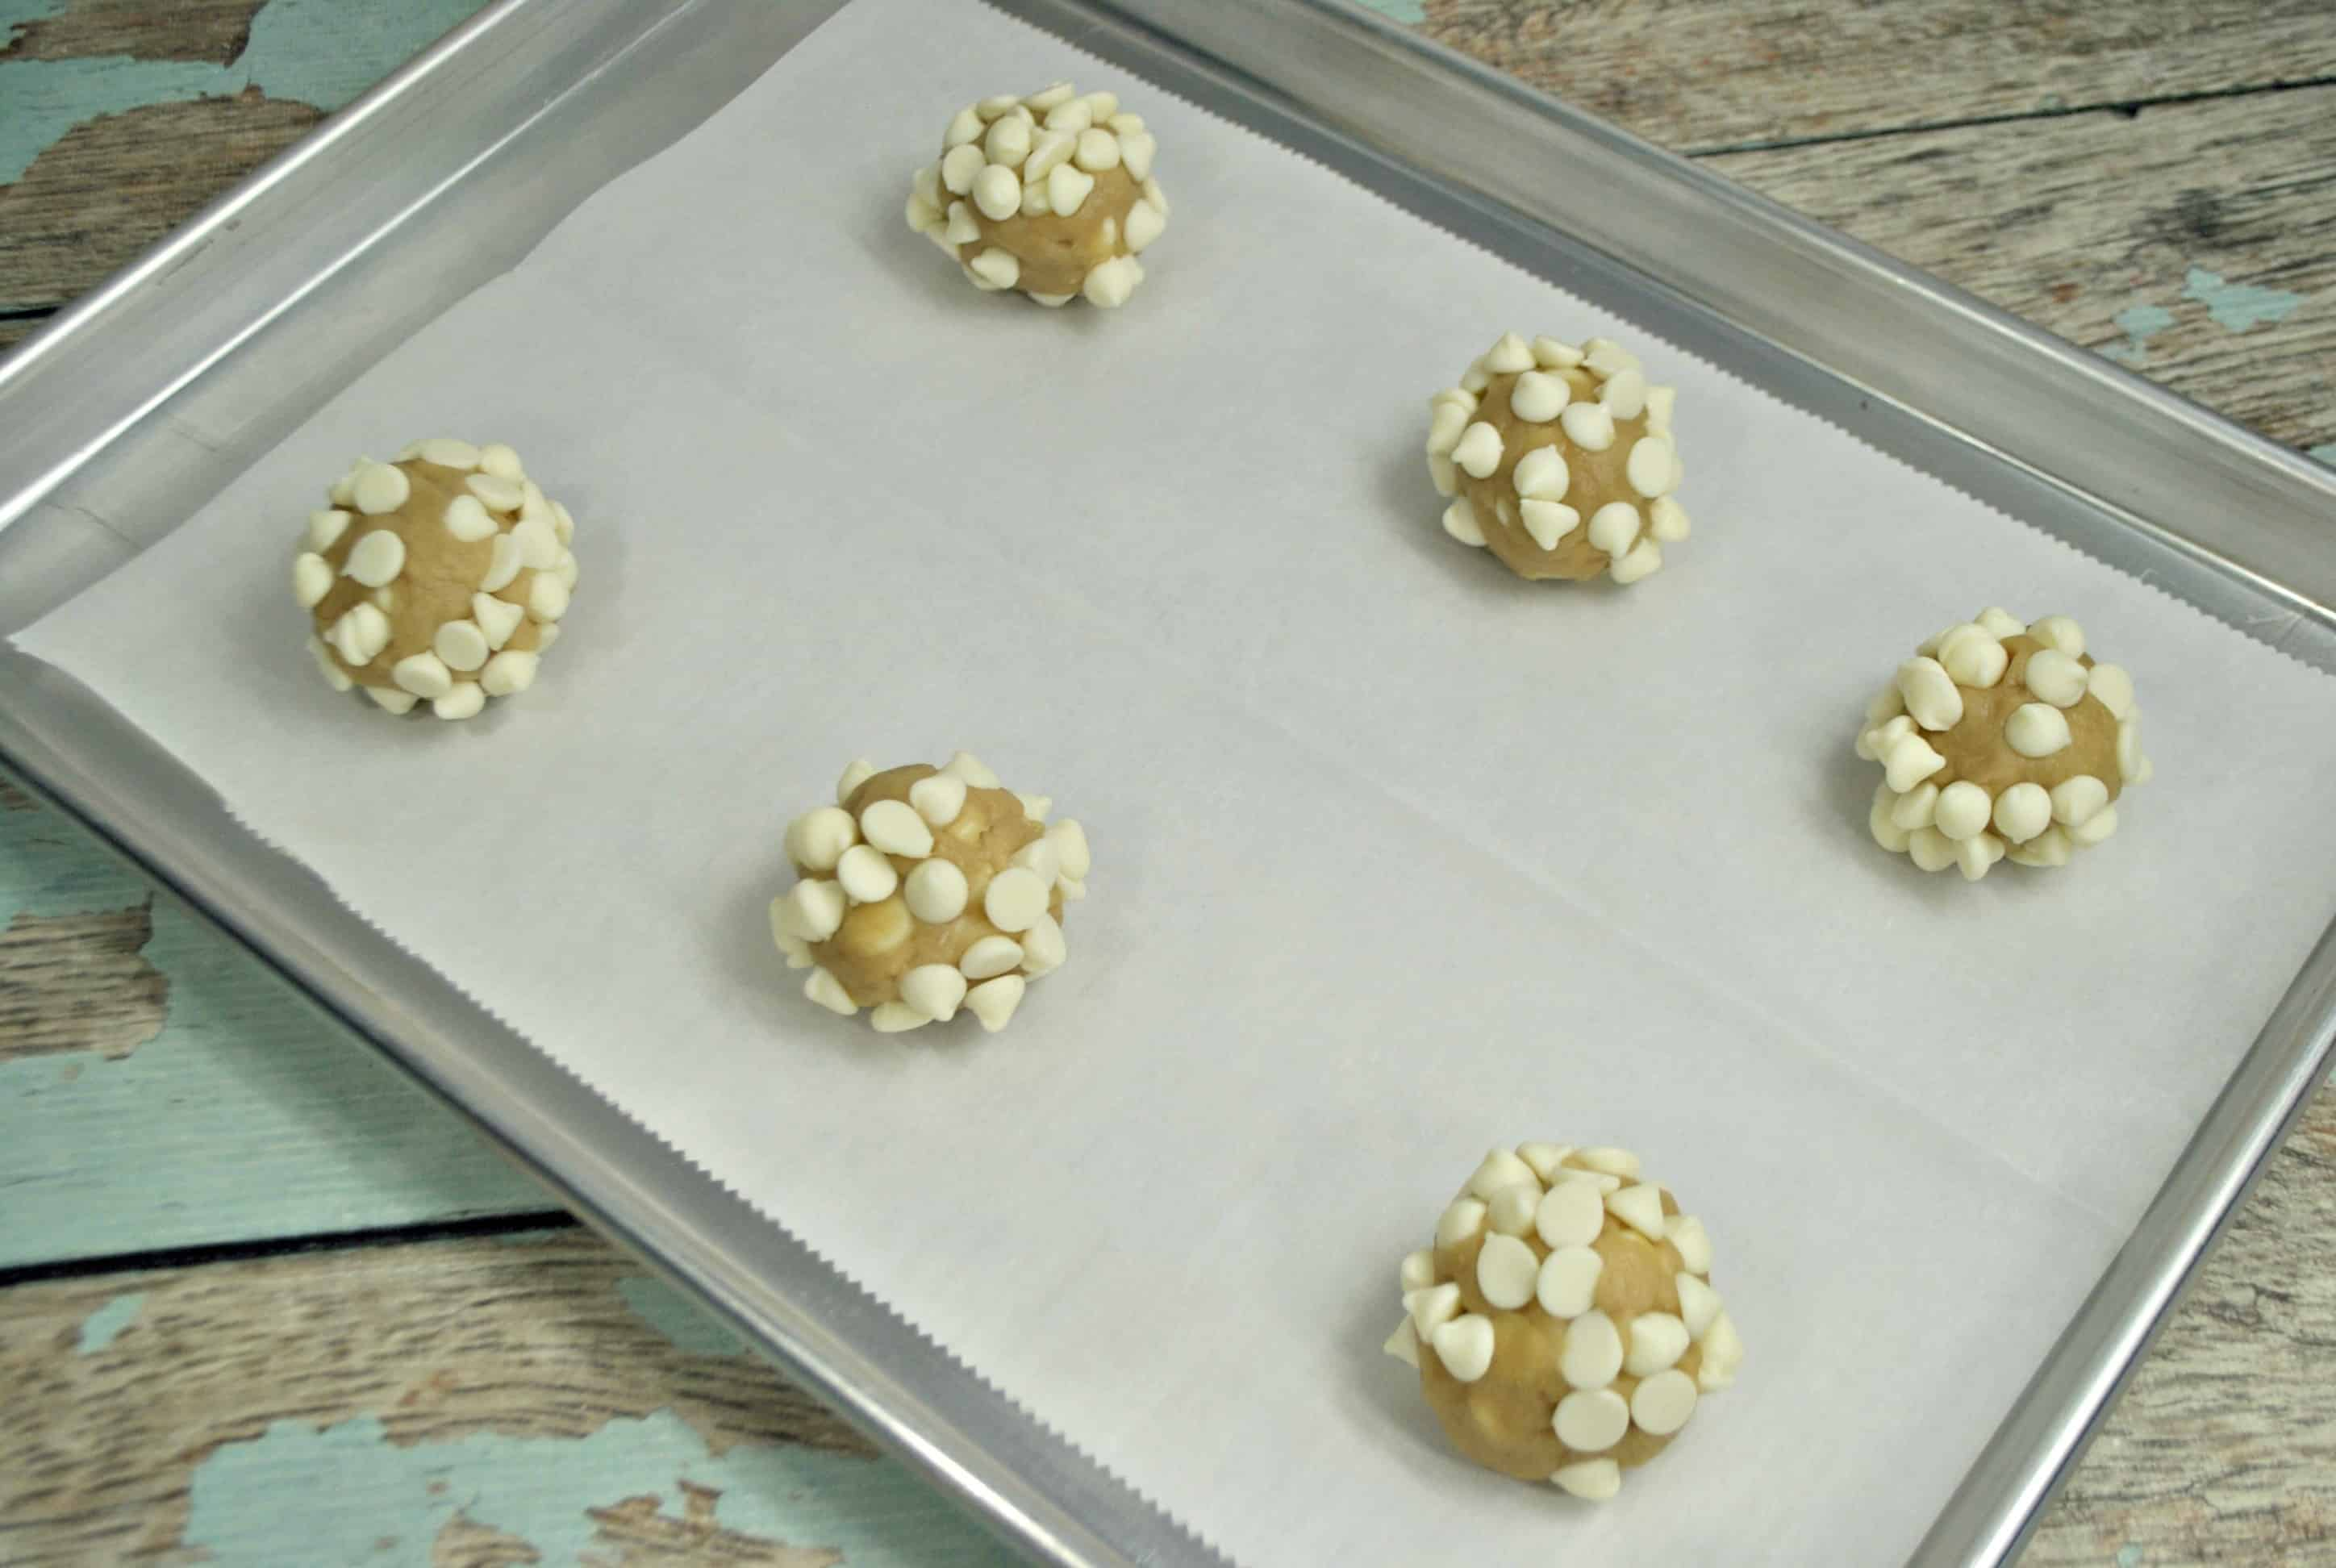 roll the dough into white chocolate chips